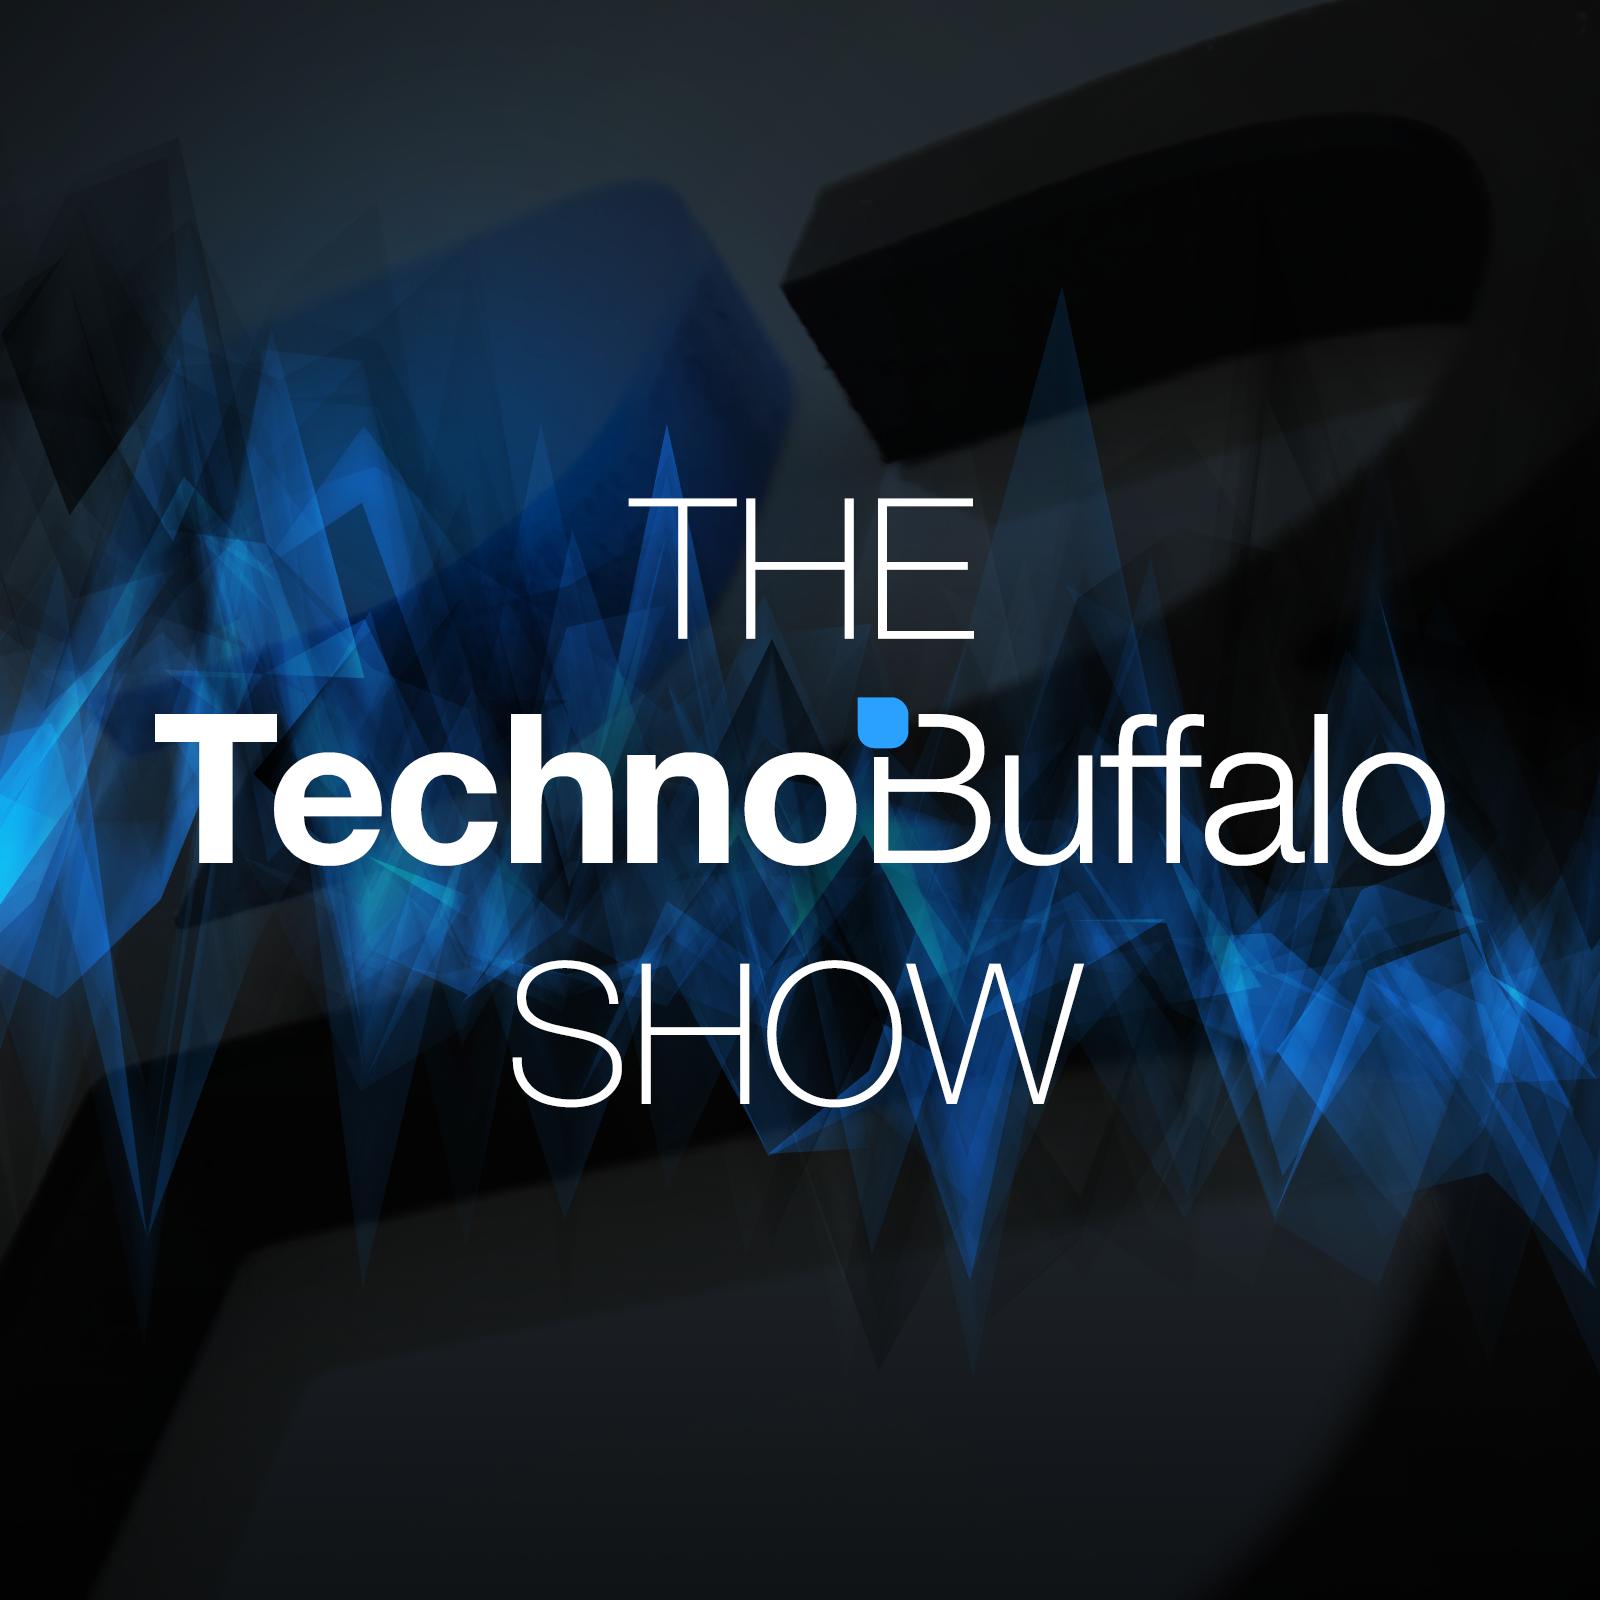 The TechnoBuffalo Show Episode #019